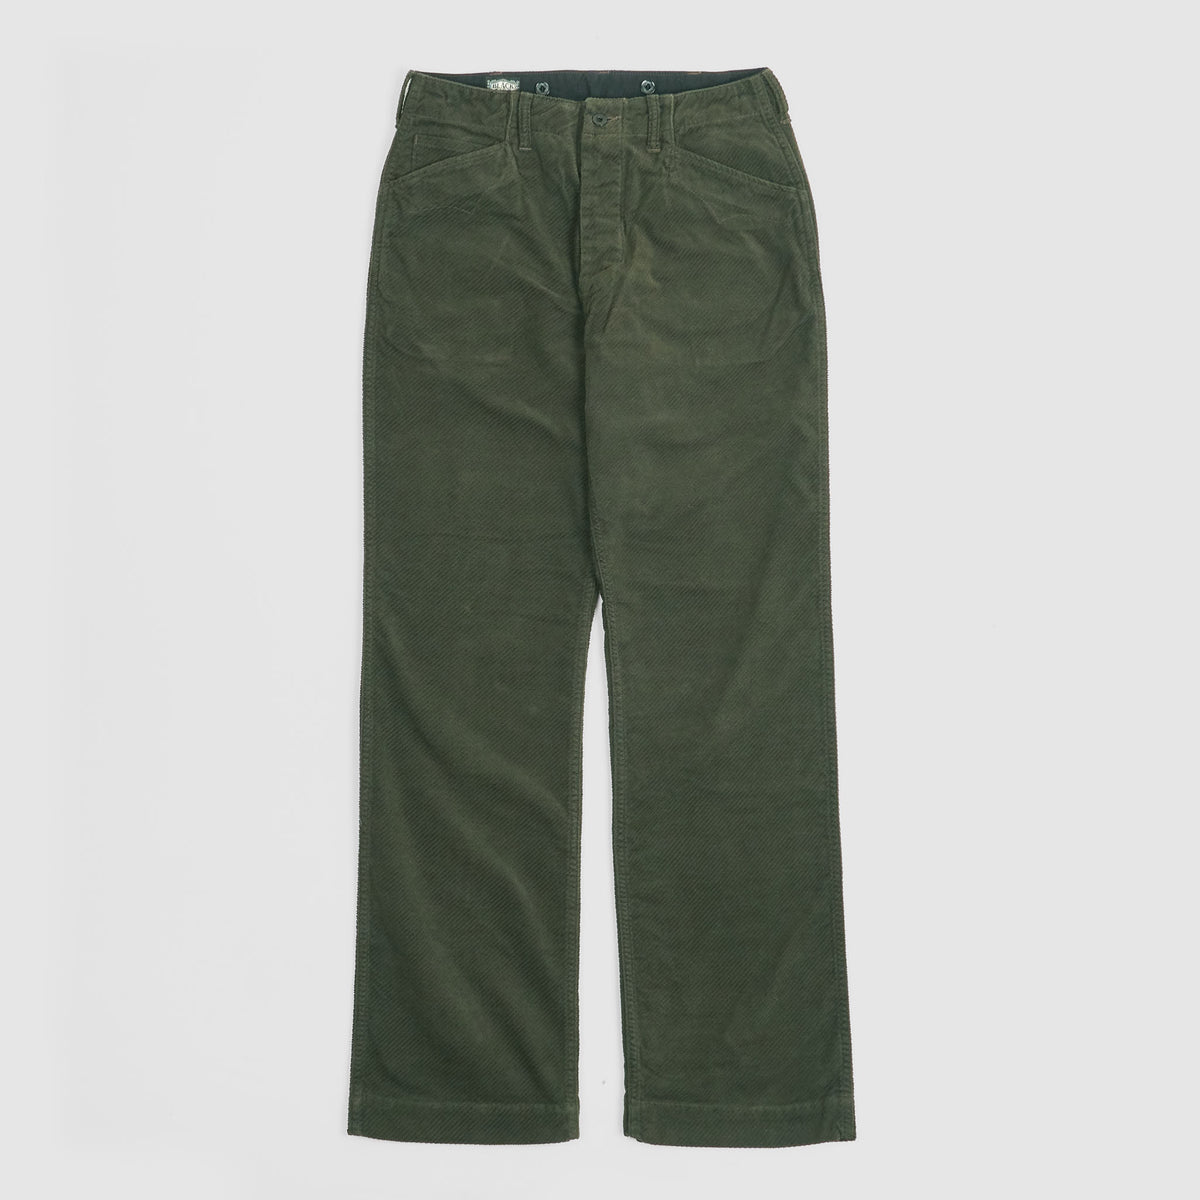 Black Sign Rasp Cord Miner Chino